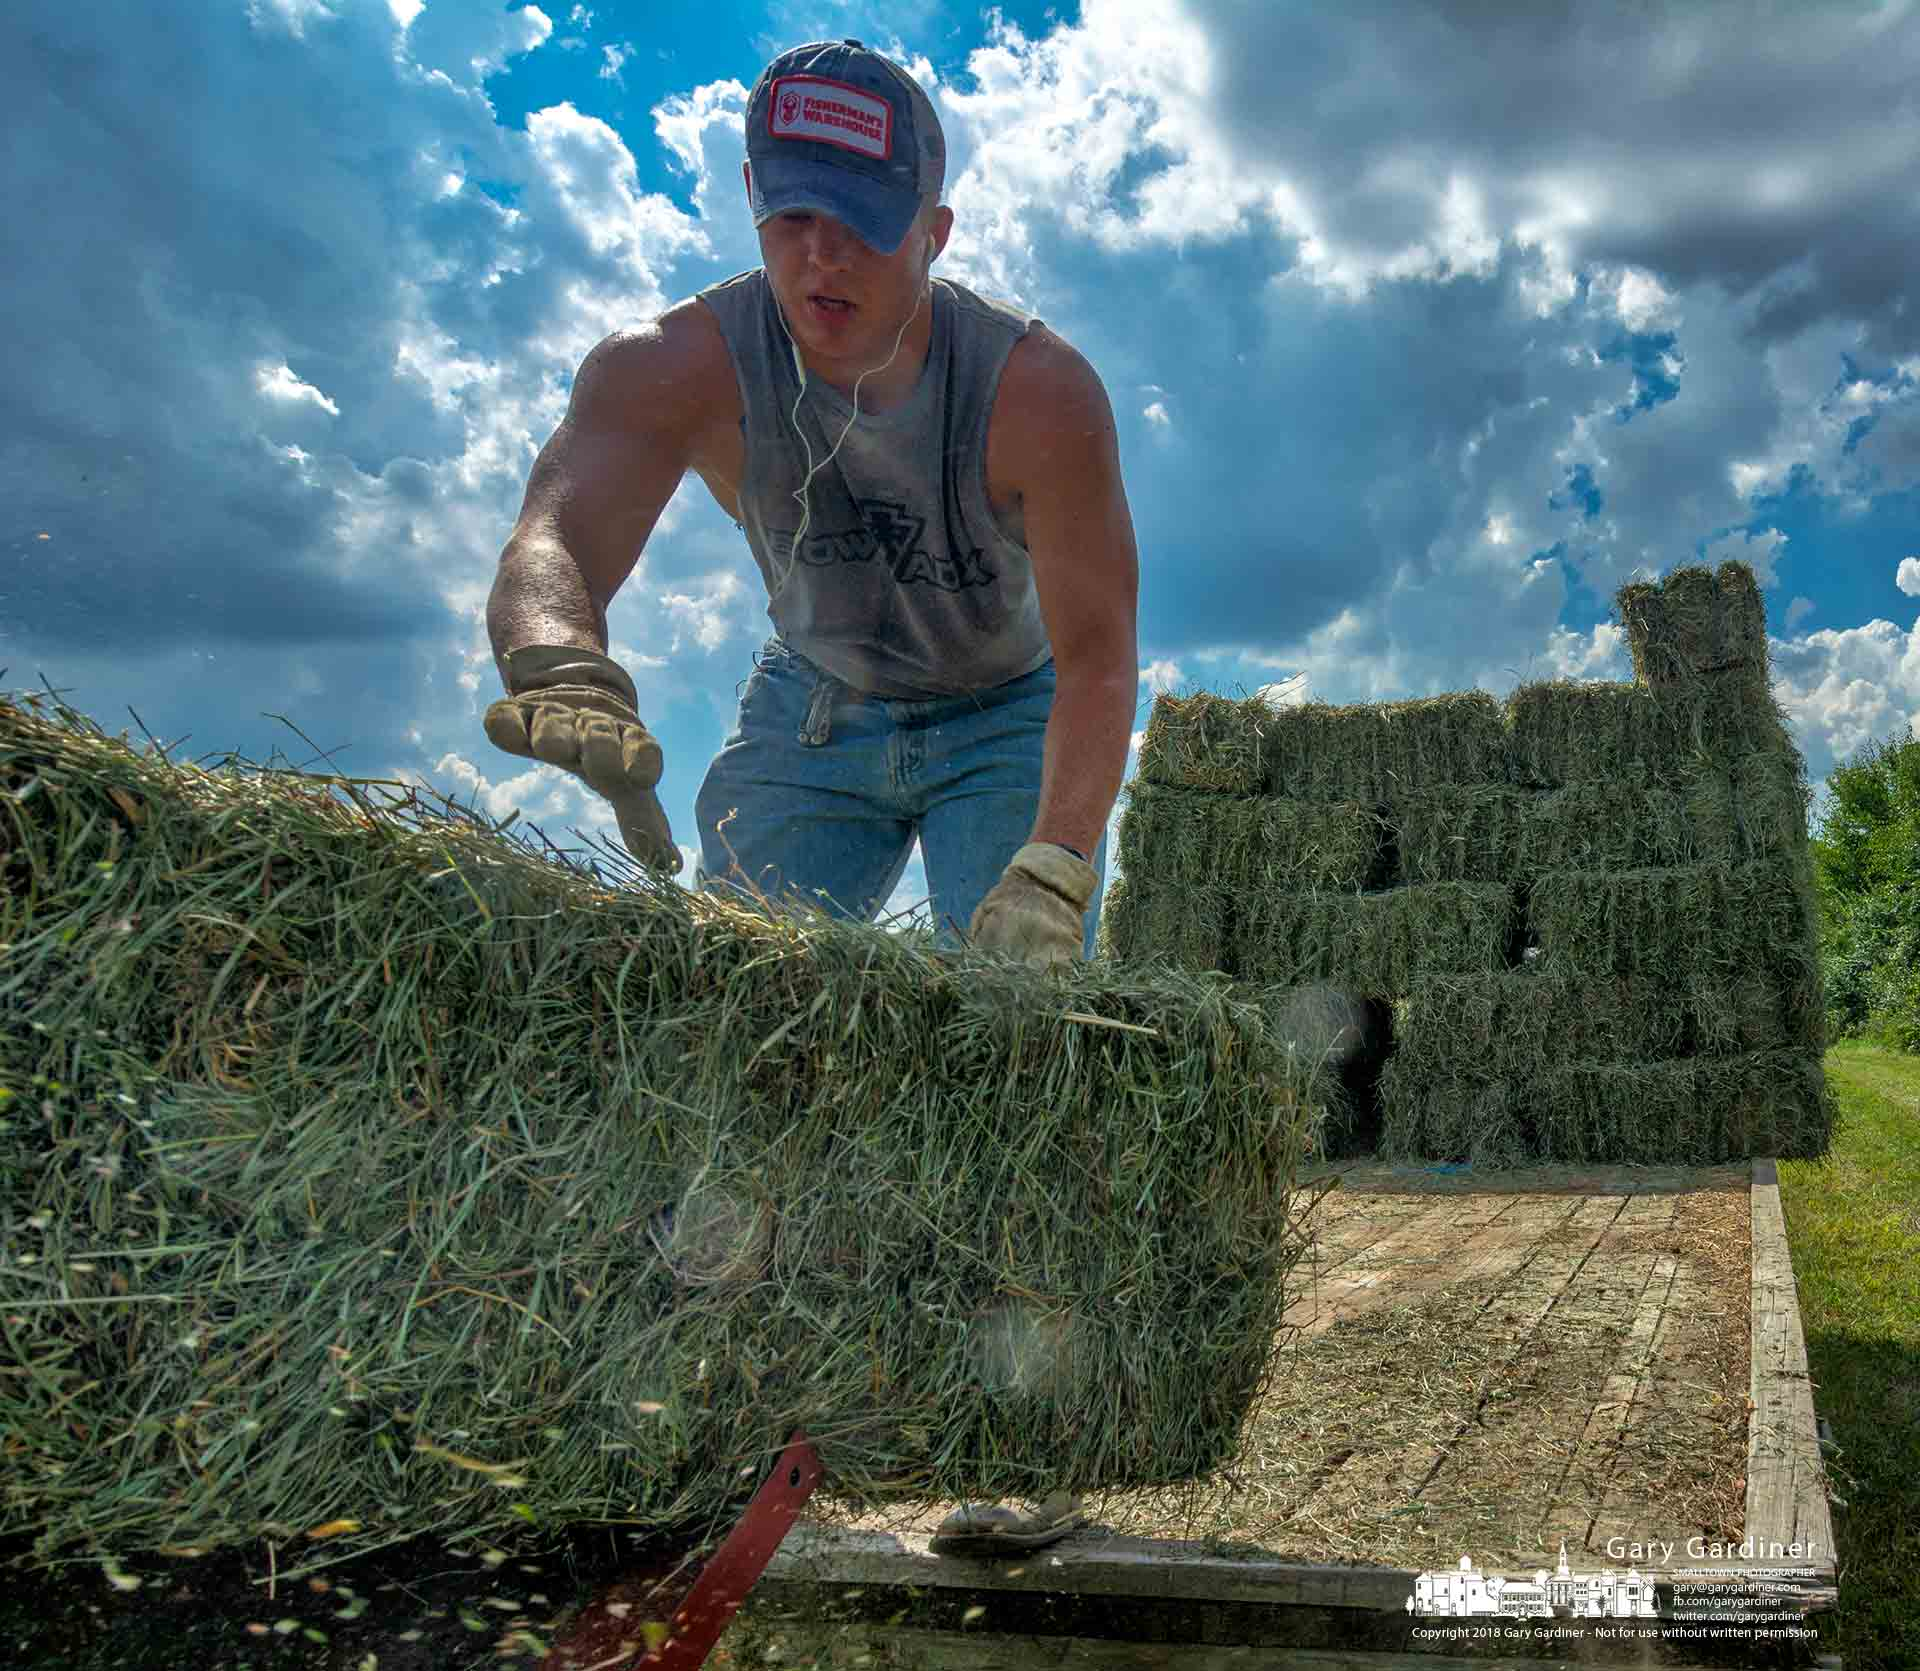 An Otterbein sophomore loads hay onto a hay wagon from one of the Otterbein fields on Campusview and Cooper Roads on a day when the temperature hit 93 degrees, just three degrees less than the record for the date. My Final Photo for Sept. 4, 2018.